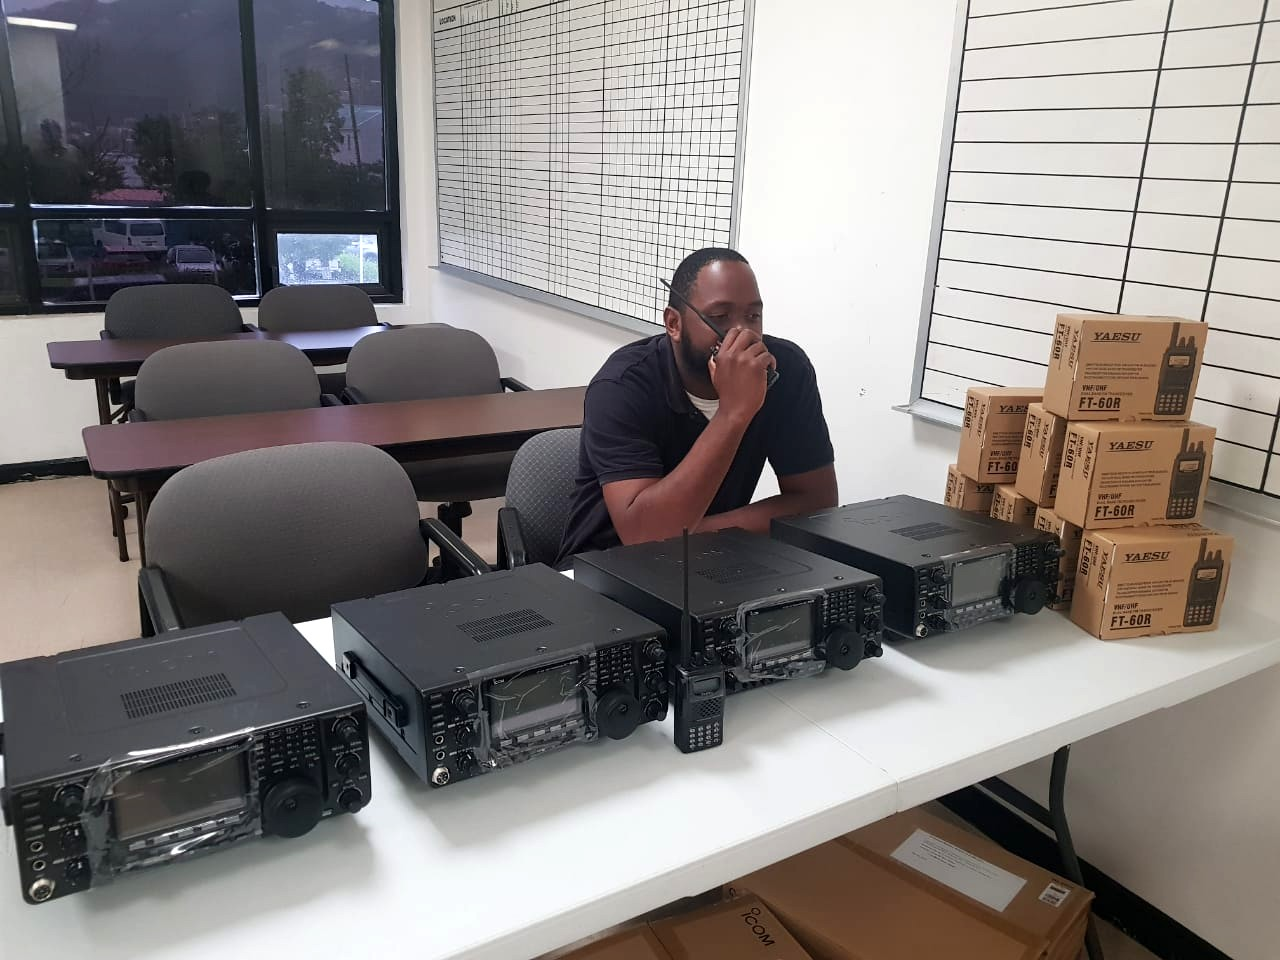 HAM Operators Receive Equipment To Boost Their System